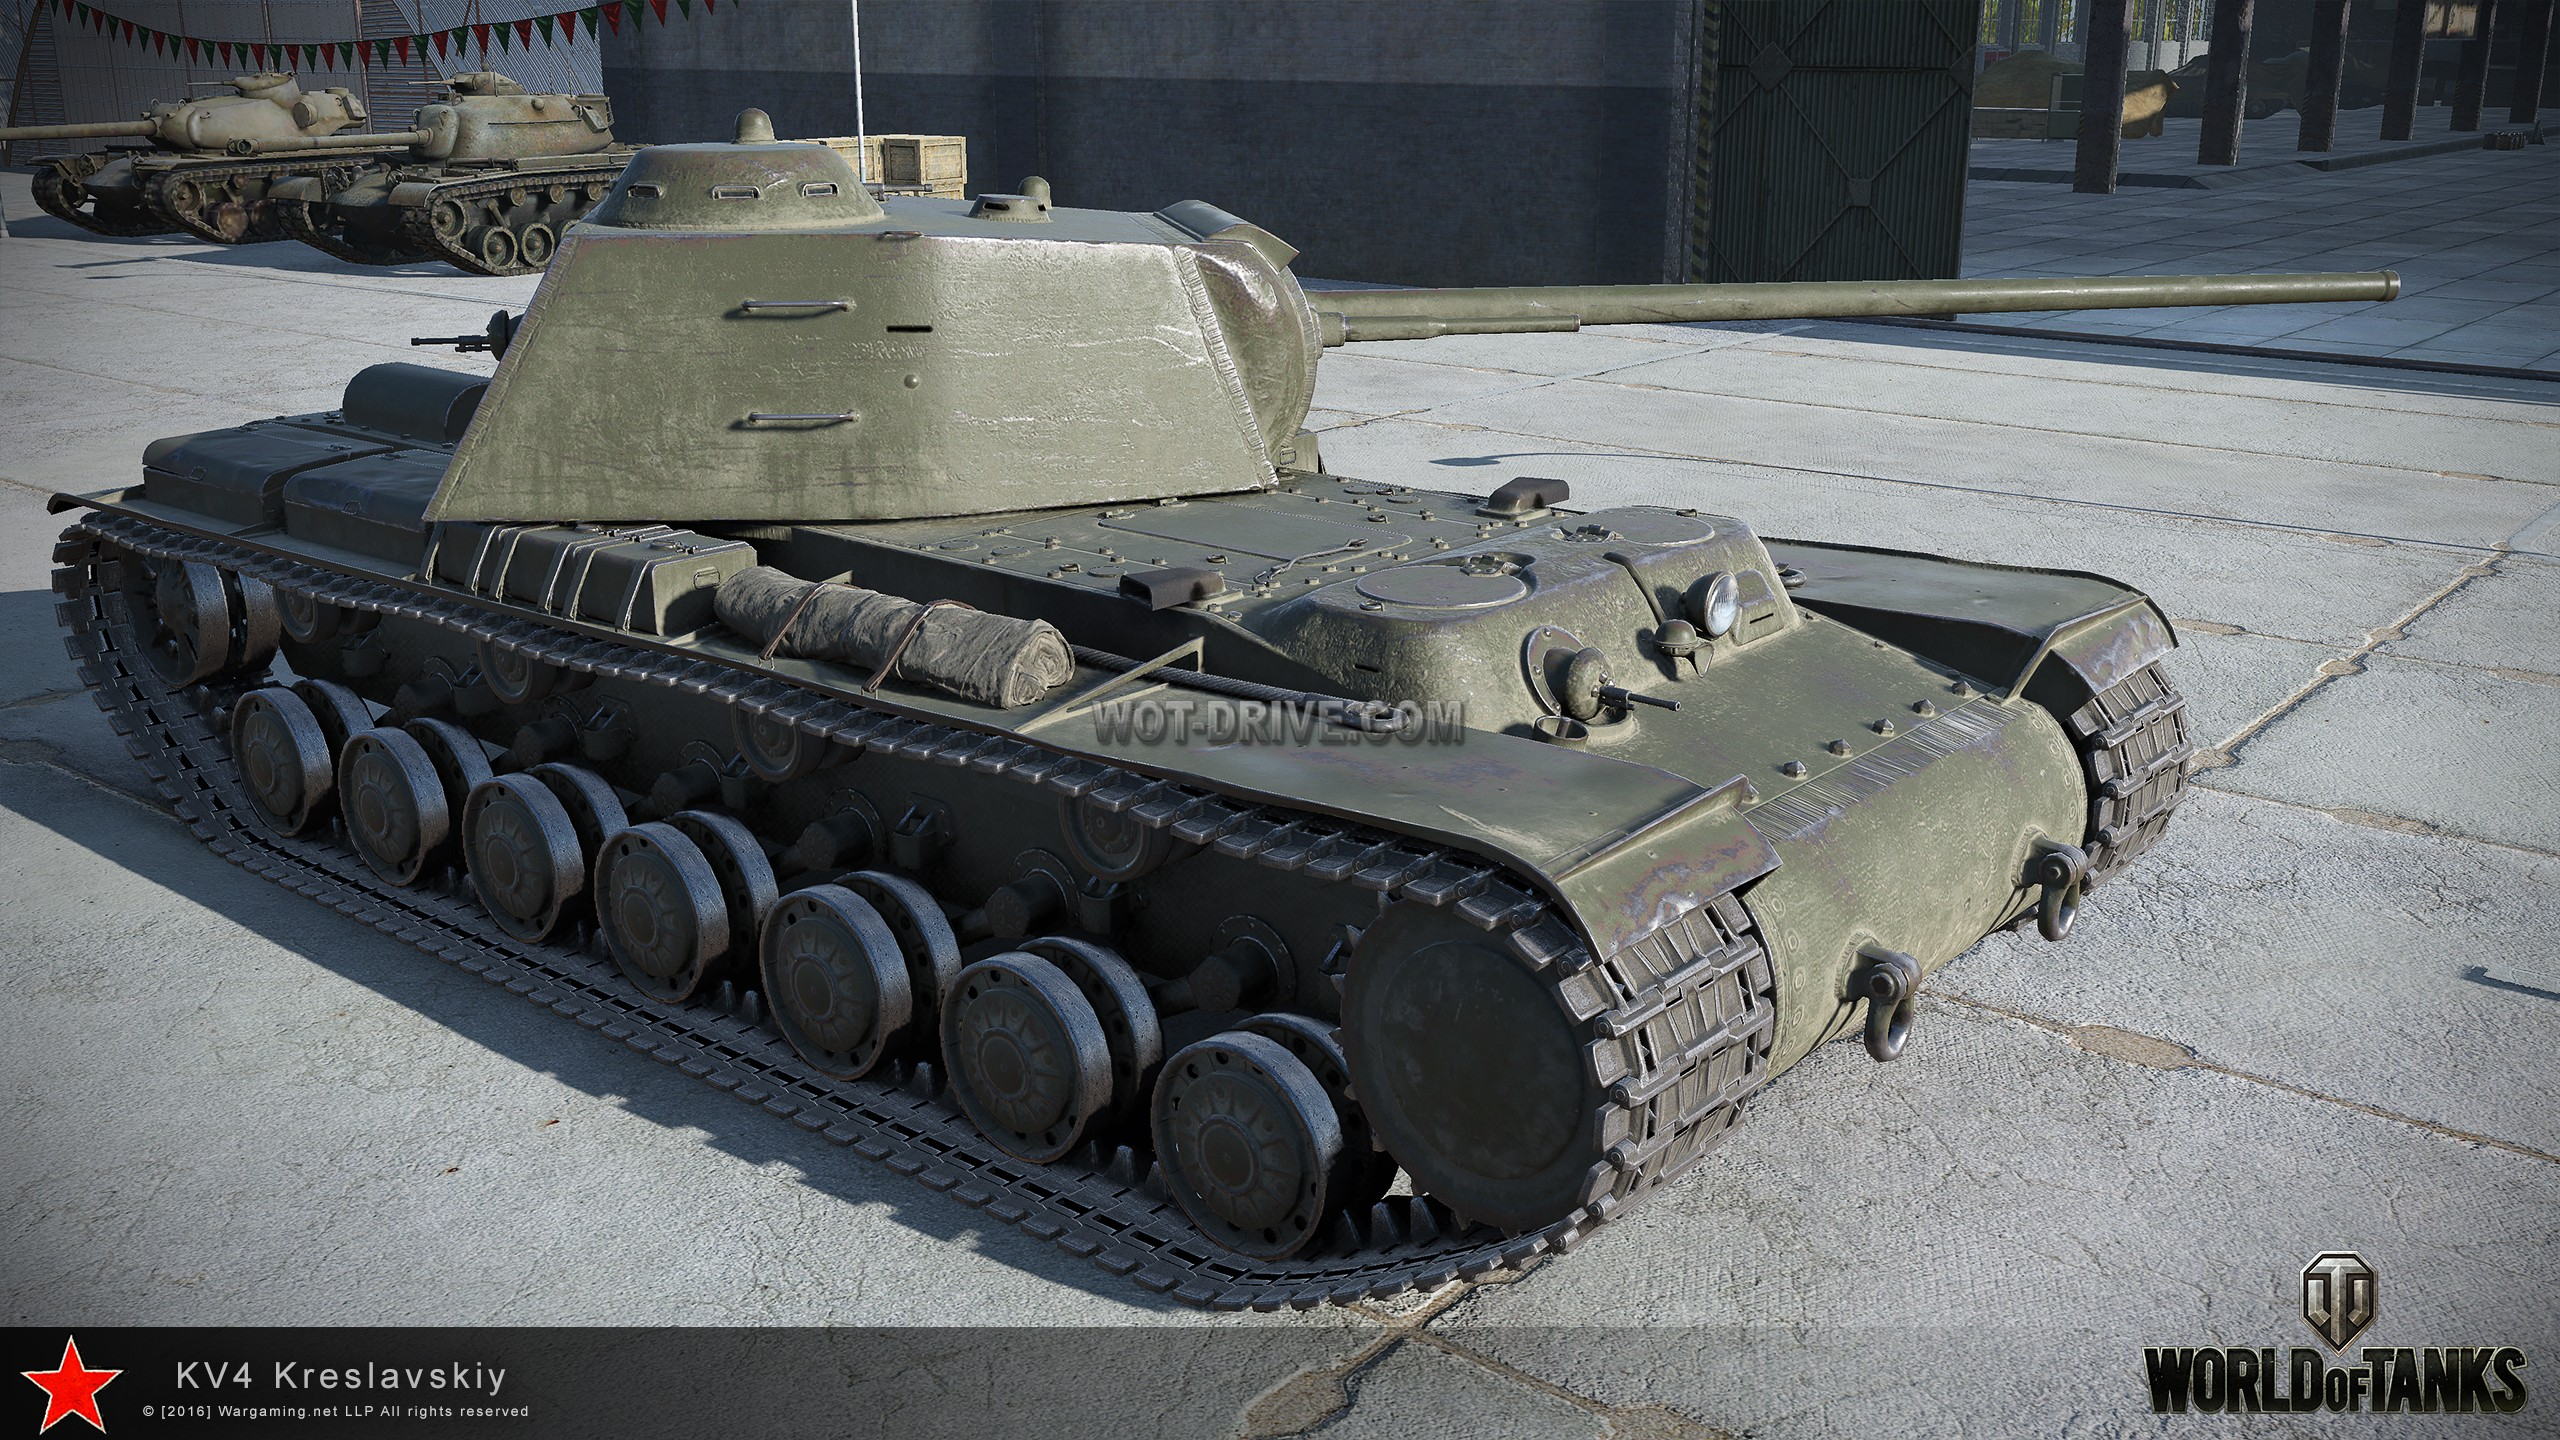 World of tanks кв-4 креславского купить scorpion g world of tanks regbnm